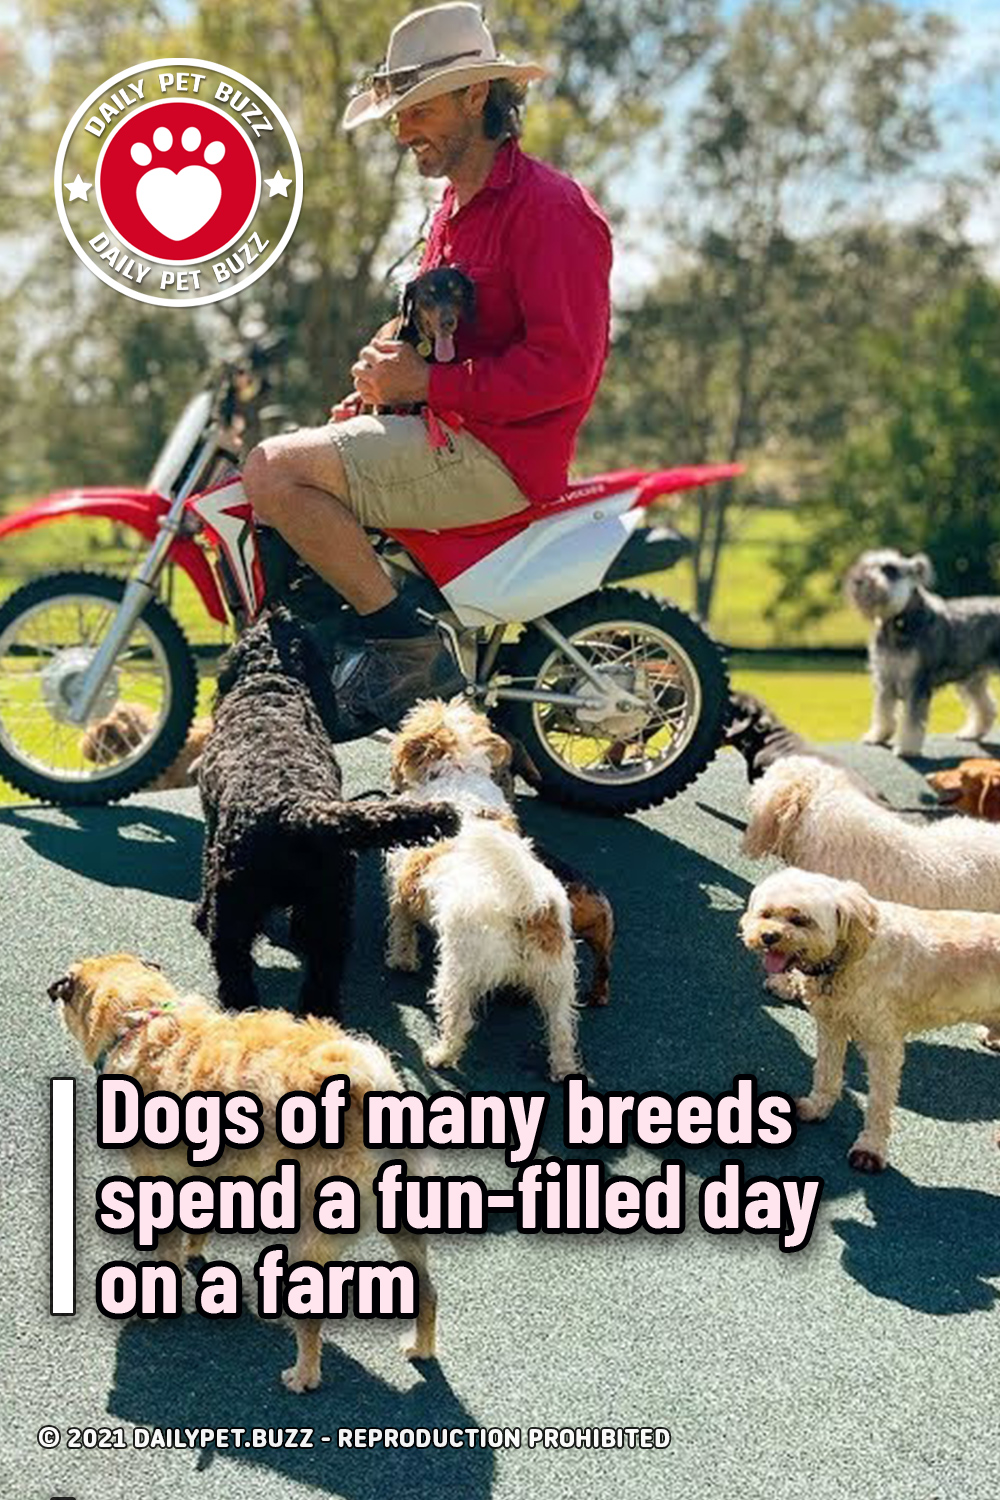 Dogs of many breeds spend a fun-filled day on a farm